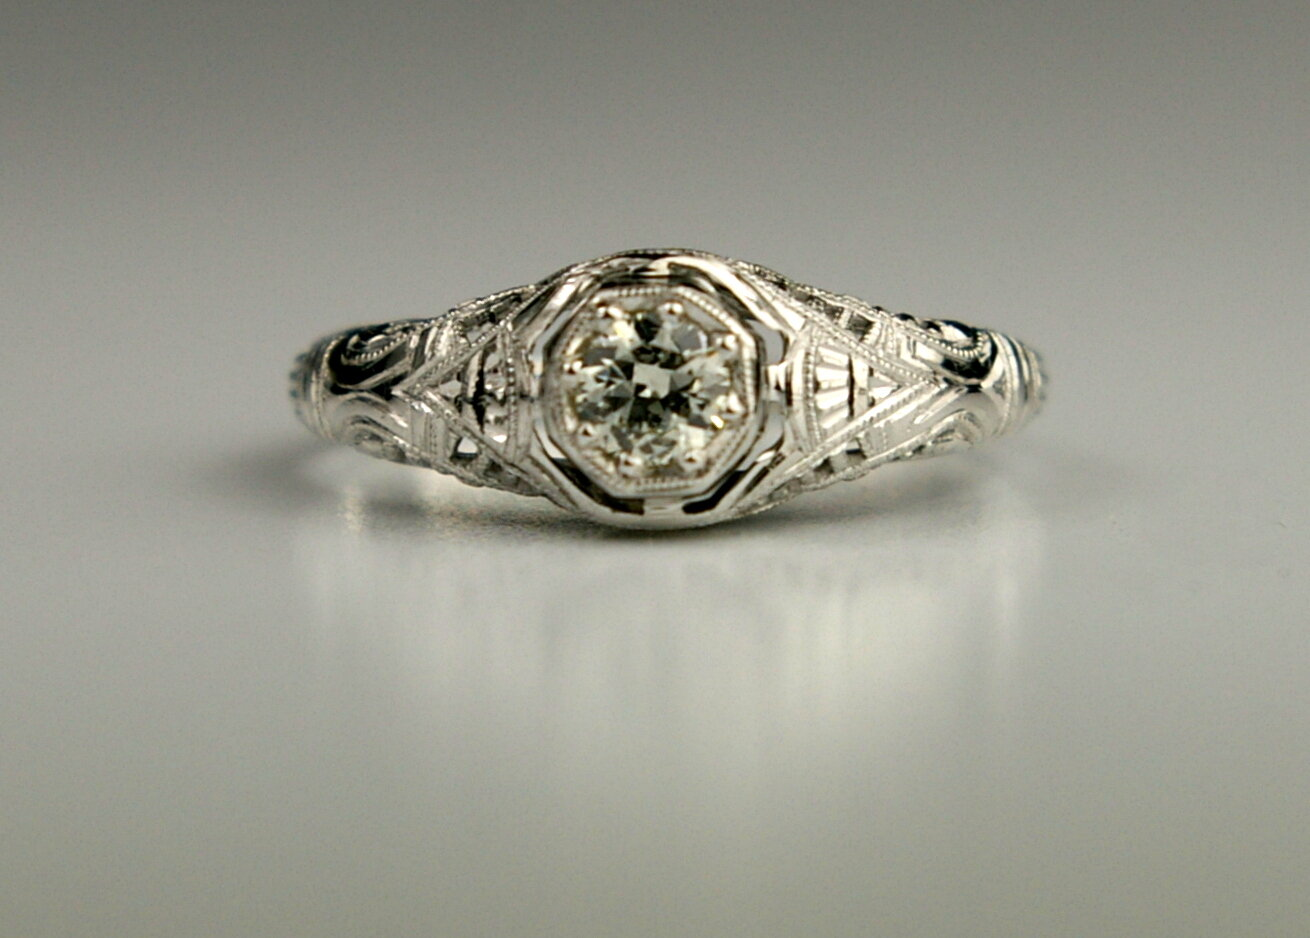 Antique Jewelry Restoration an Edwardian engagement ring after restoration at Crane Jewelers in Seattle